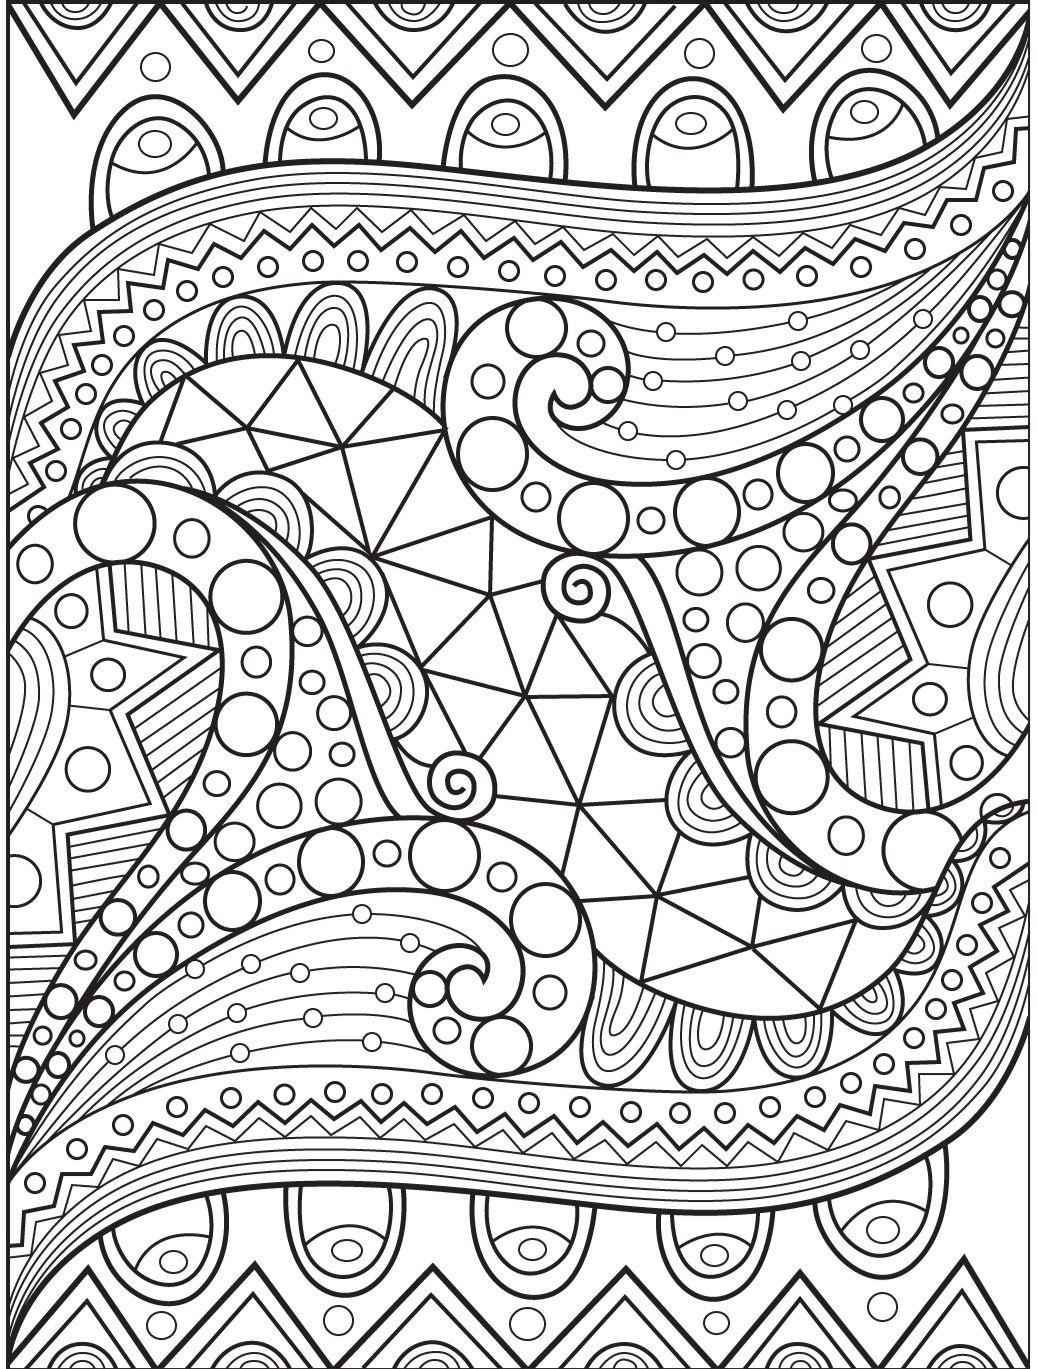 photo about Abstract Printable Coloring Pages titled 23 Summary Printable Coloring Webpages Obtain - Coloring Sheets